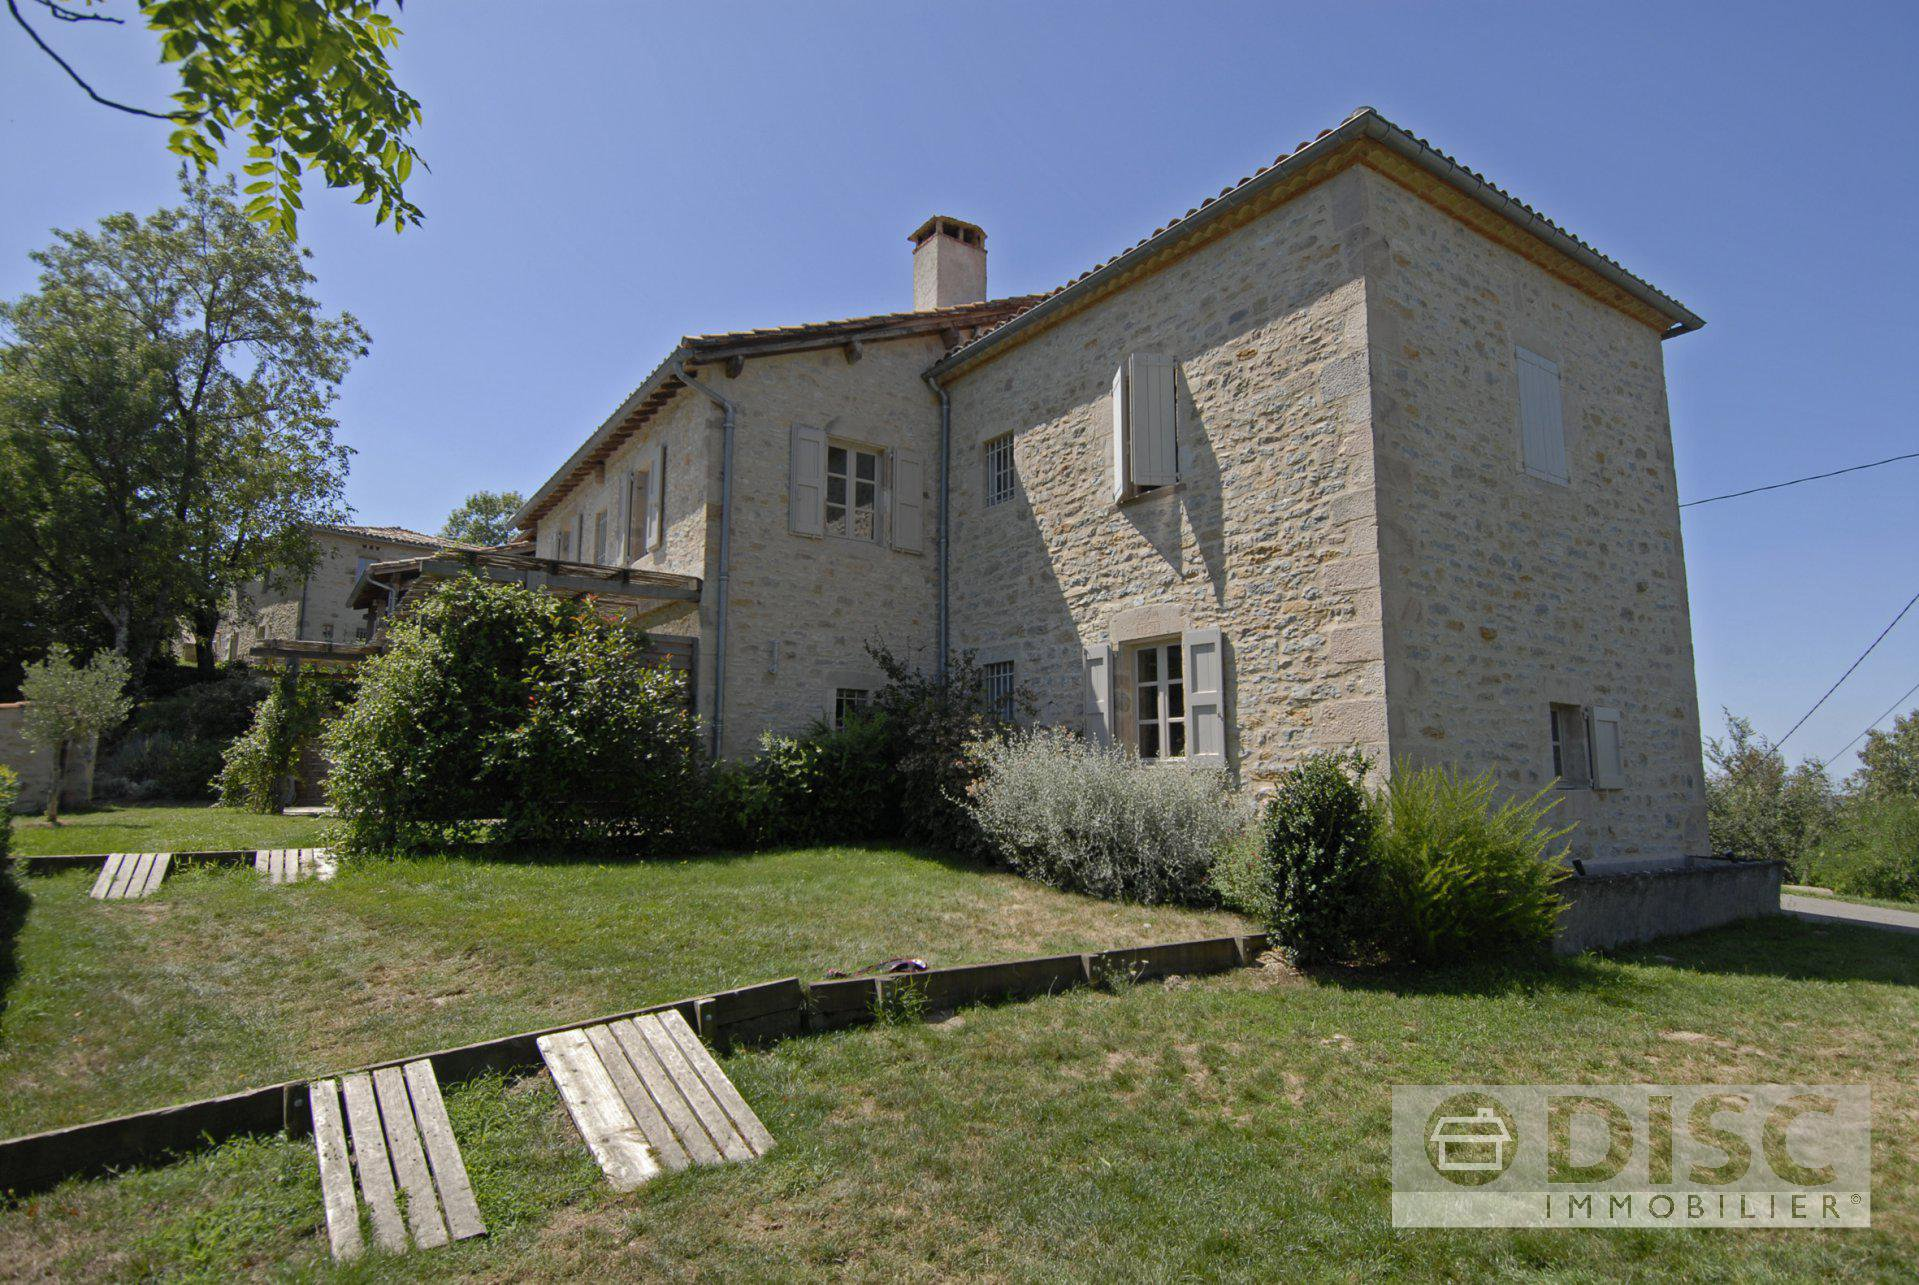 Completely-renovated hamlet with 85 ha (200 acres) of land